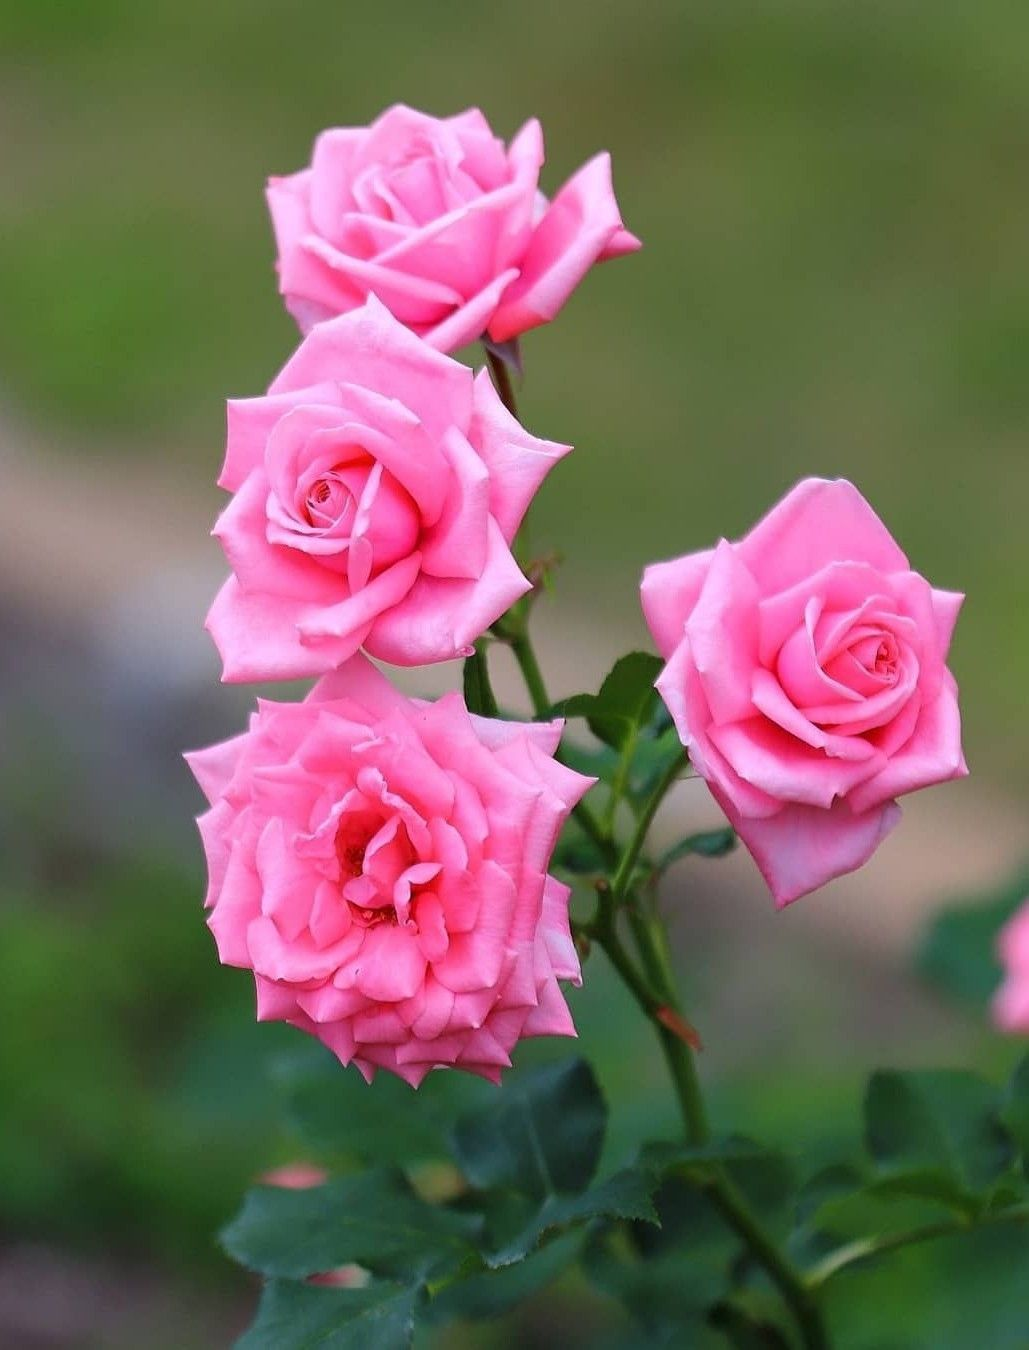 Pin By My Anh On 1 A File General Beautiful Rose Flowers Amazing Flowers Beautiful Roses